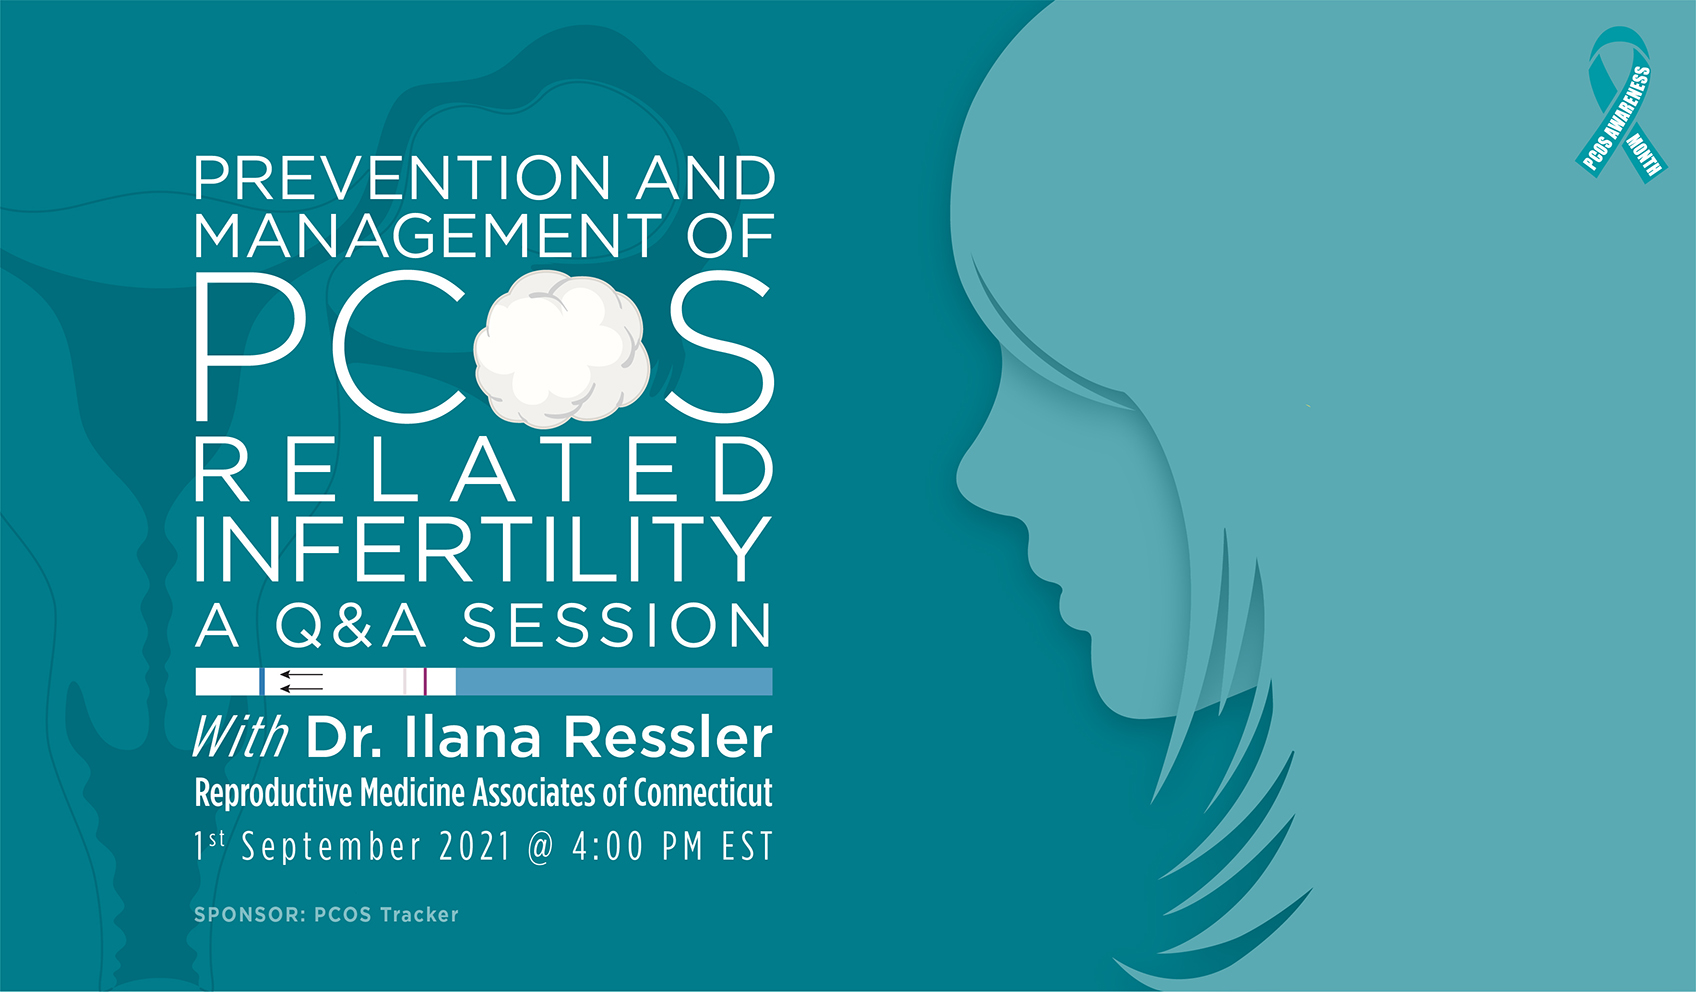 Prevention and Management of PCOS Related Infertility – A Q&A Session